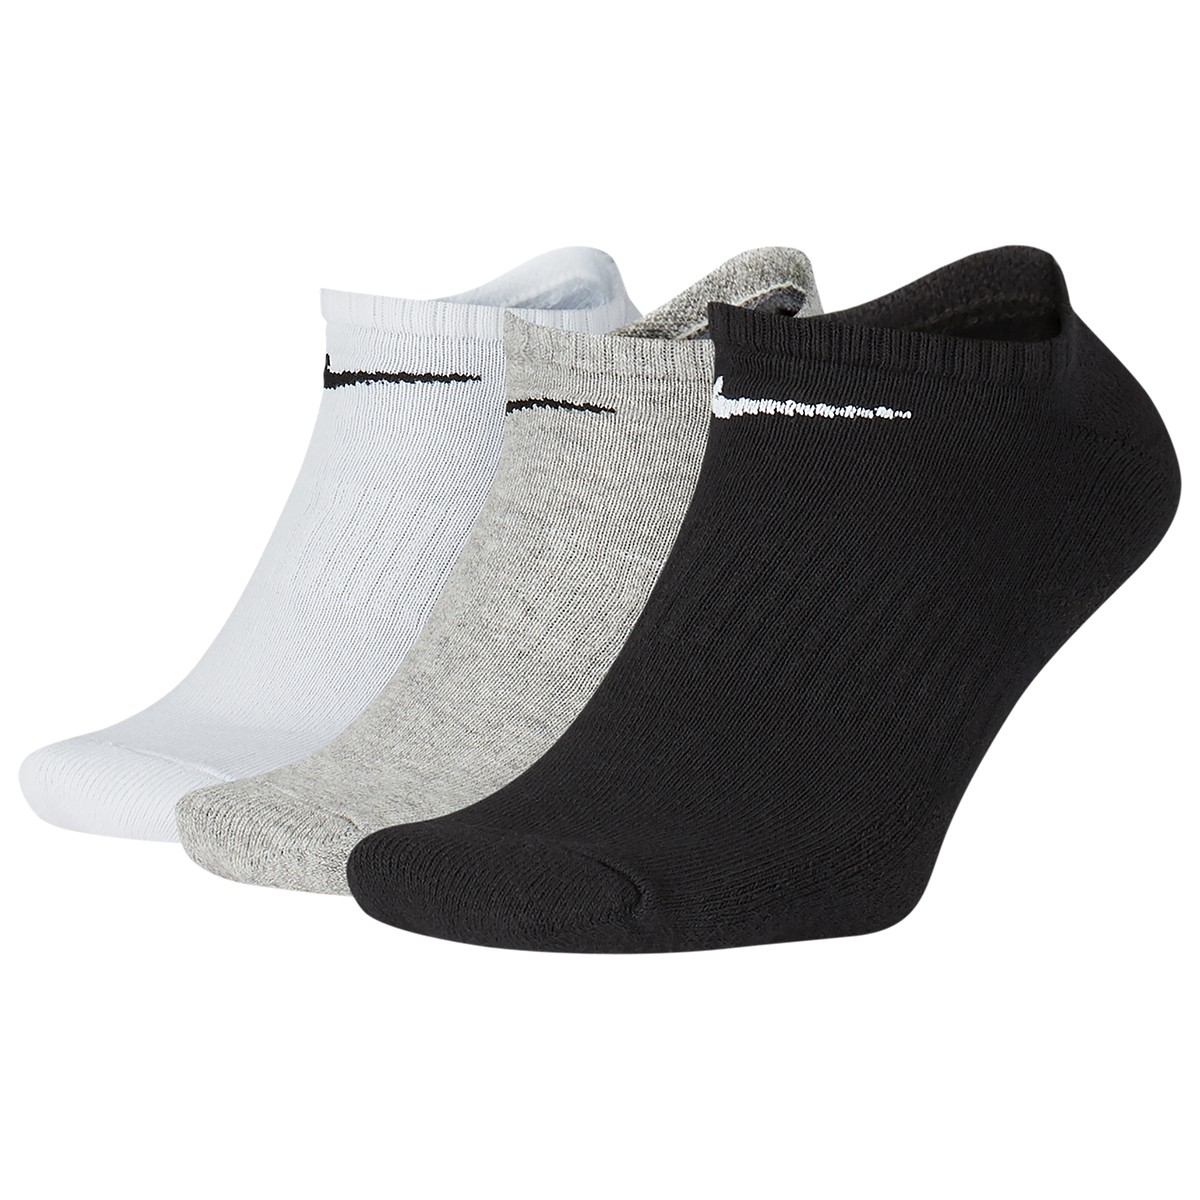 3 PAIRES  DE CHAUSSETTES NIKE CUSHION EVERYDAY EXTRA-BASSES